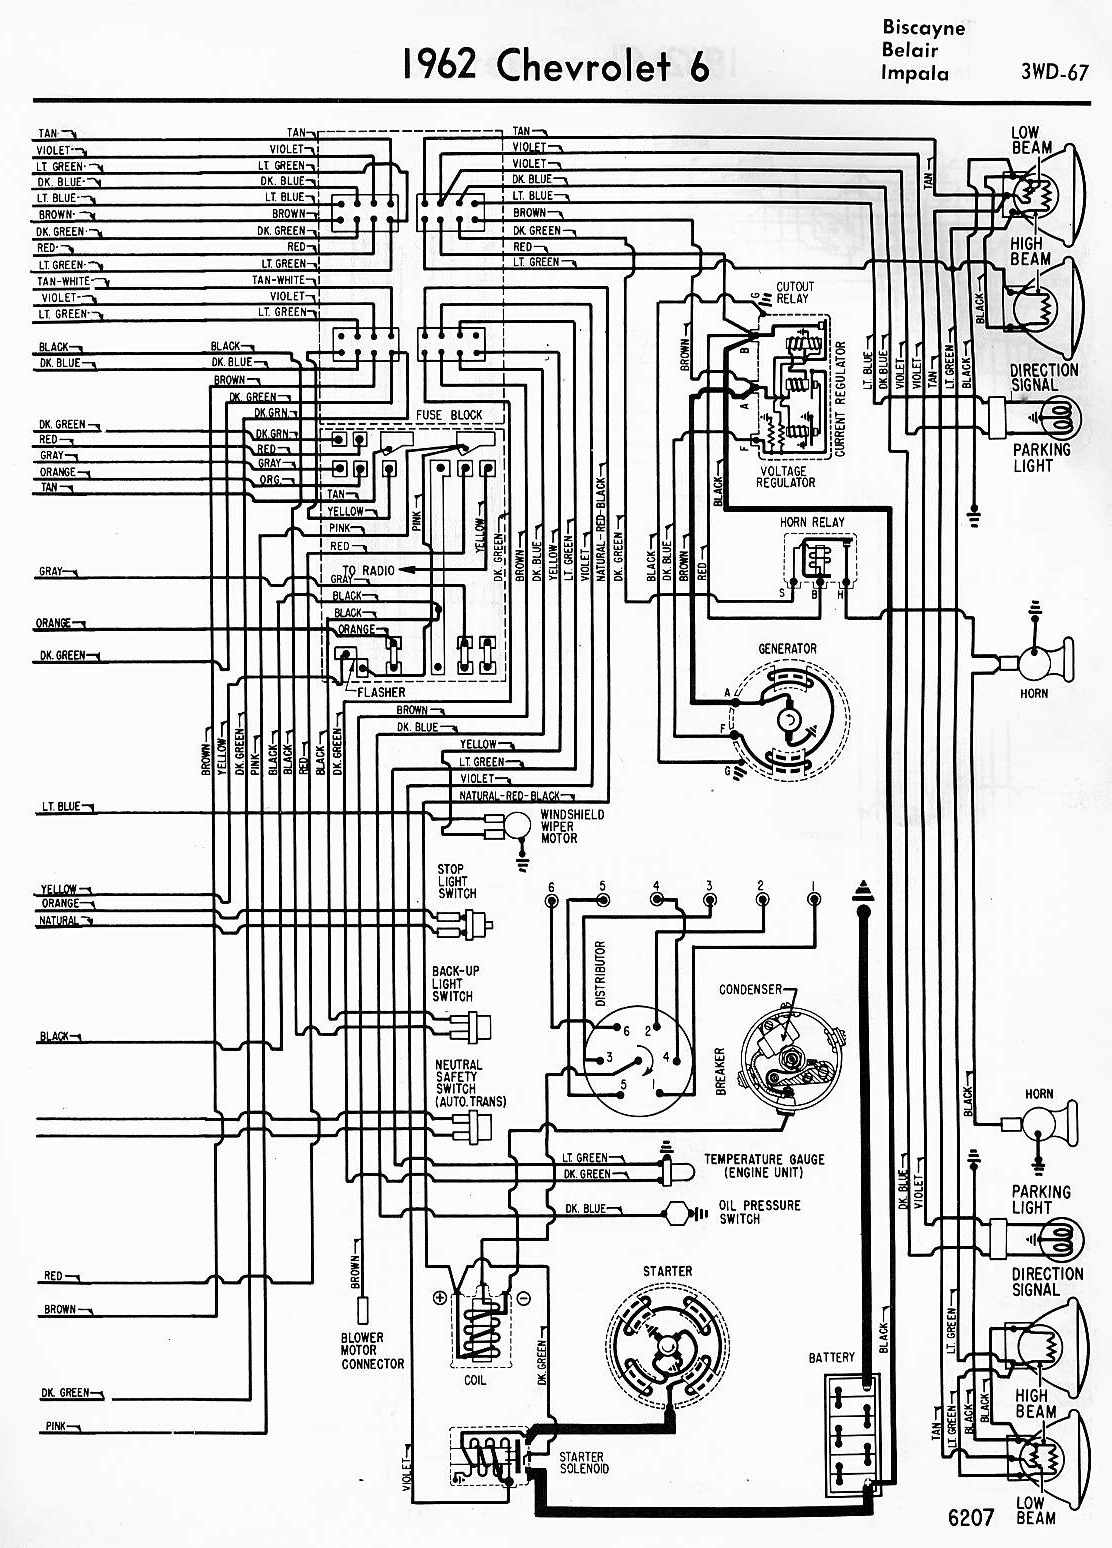 Electrical+Wiring+Diagram+Of+1964+Chevrolet+6 newport wipers wiring diagram pin wiring diagram \u2022 wiring diagrams Chevrolet 350 Wiring Diagram at fashall.co